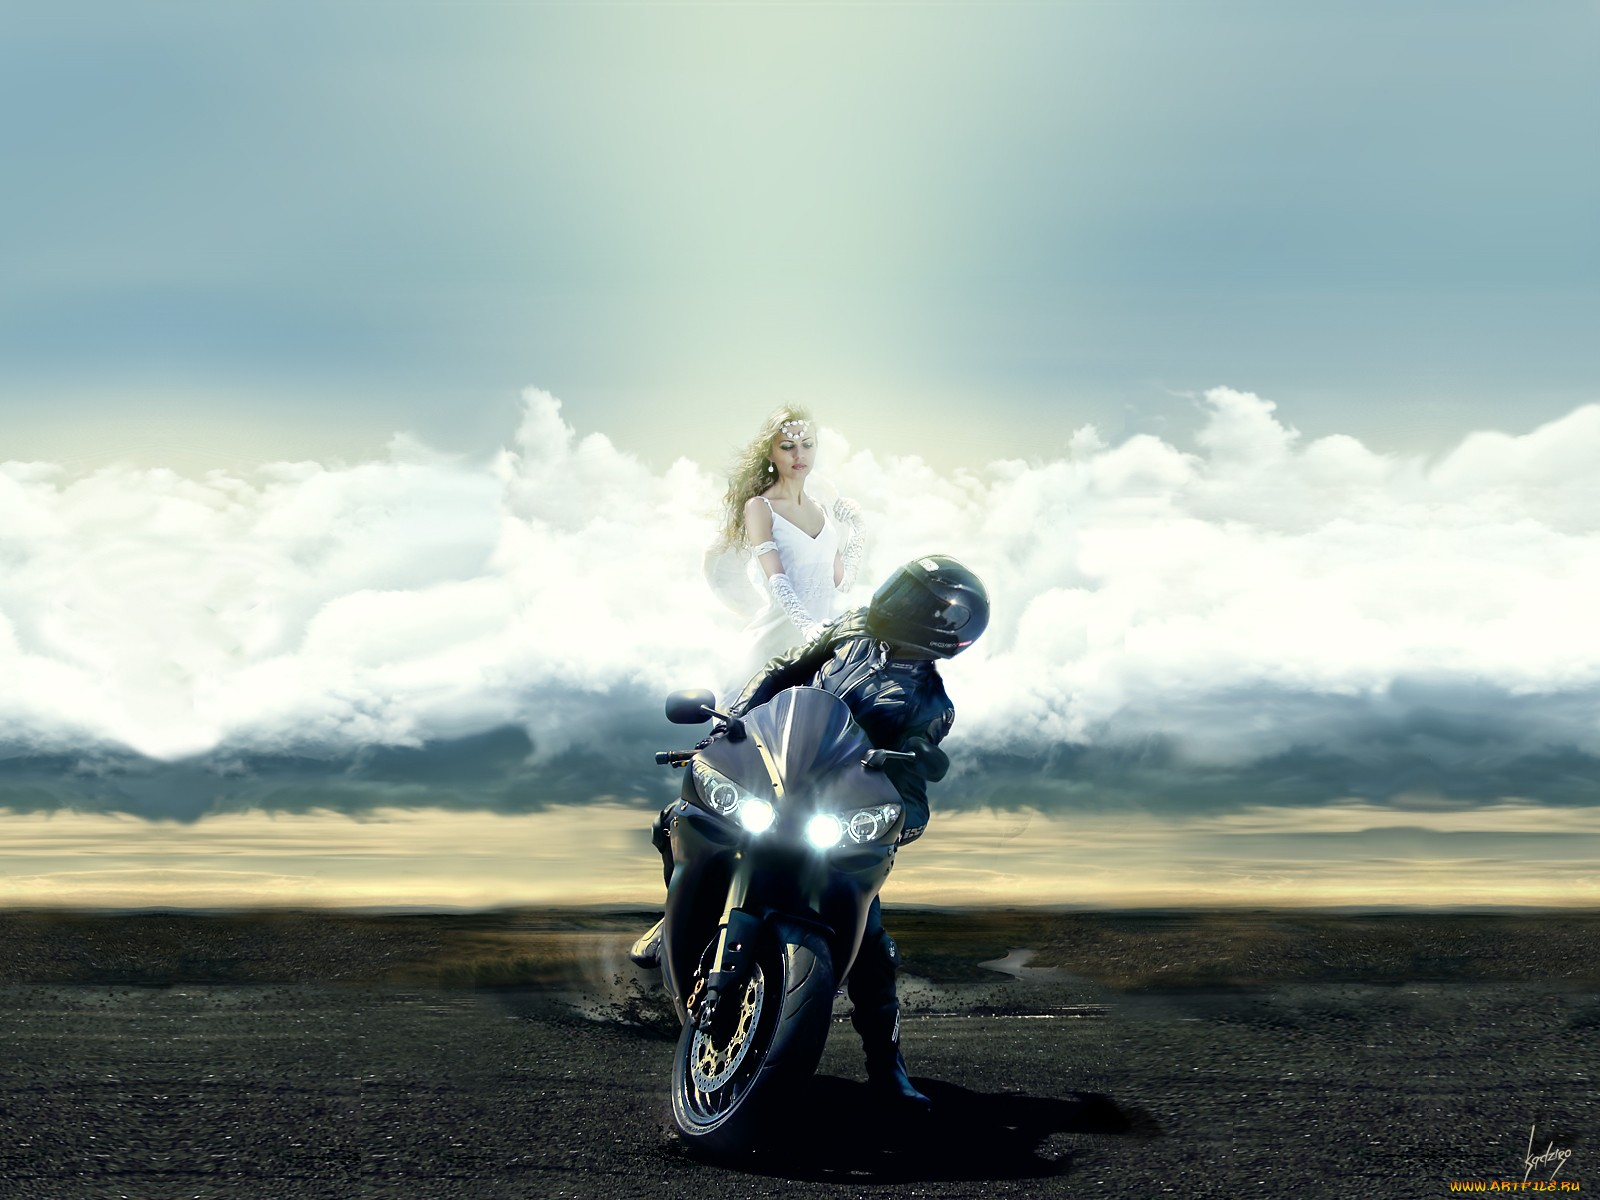 Biker Girl Wallpaper Motorcycle Wallpaper And Background Image 1600x1200 Id